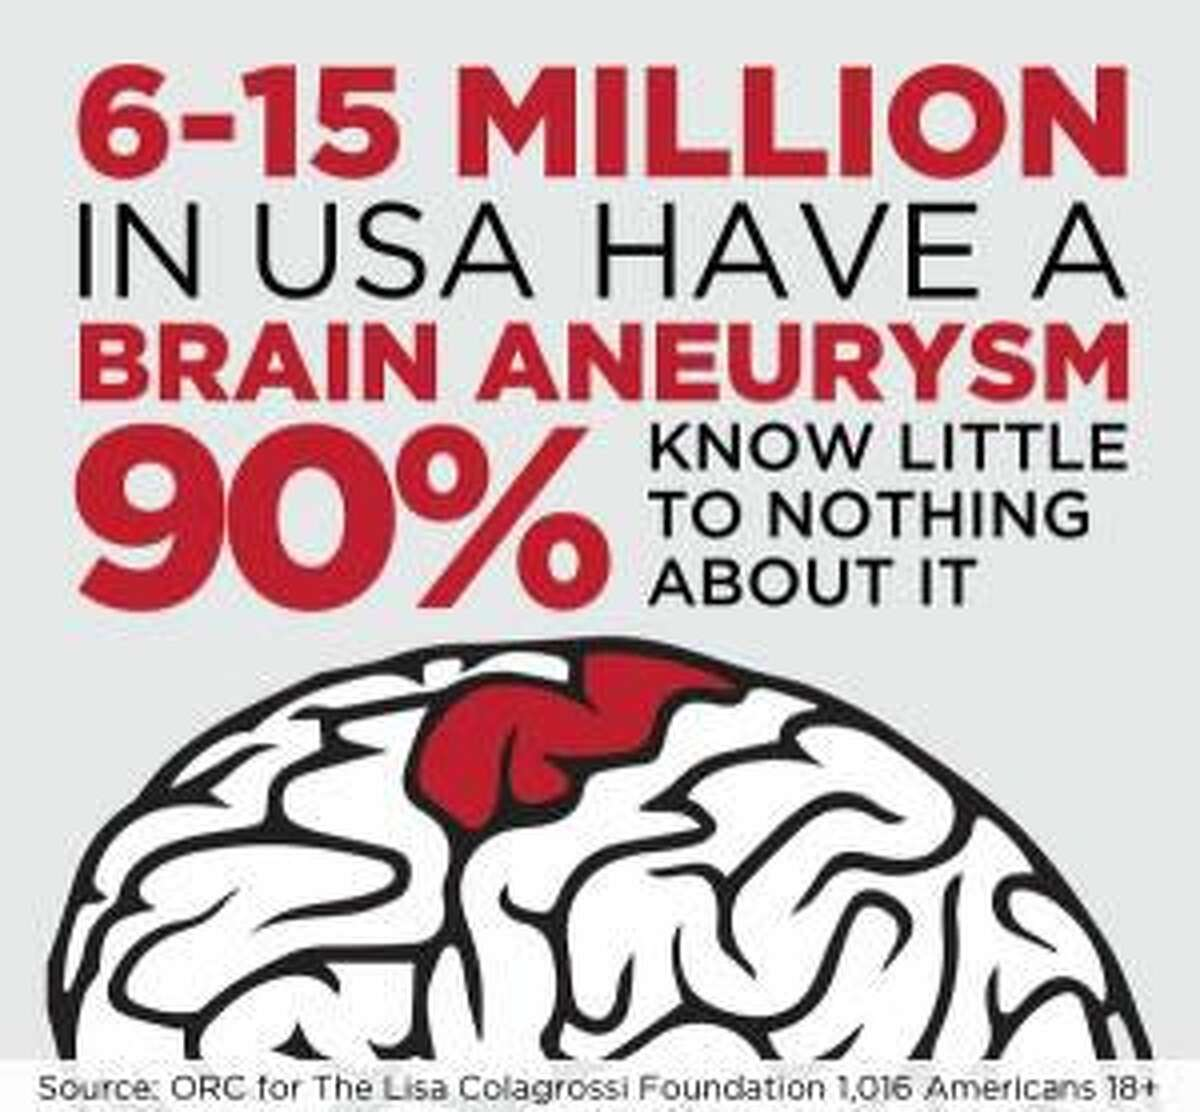 Do You Know the Warning Signs of a Brain Aneurysm?